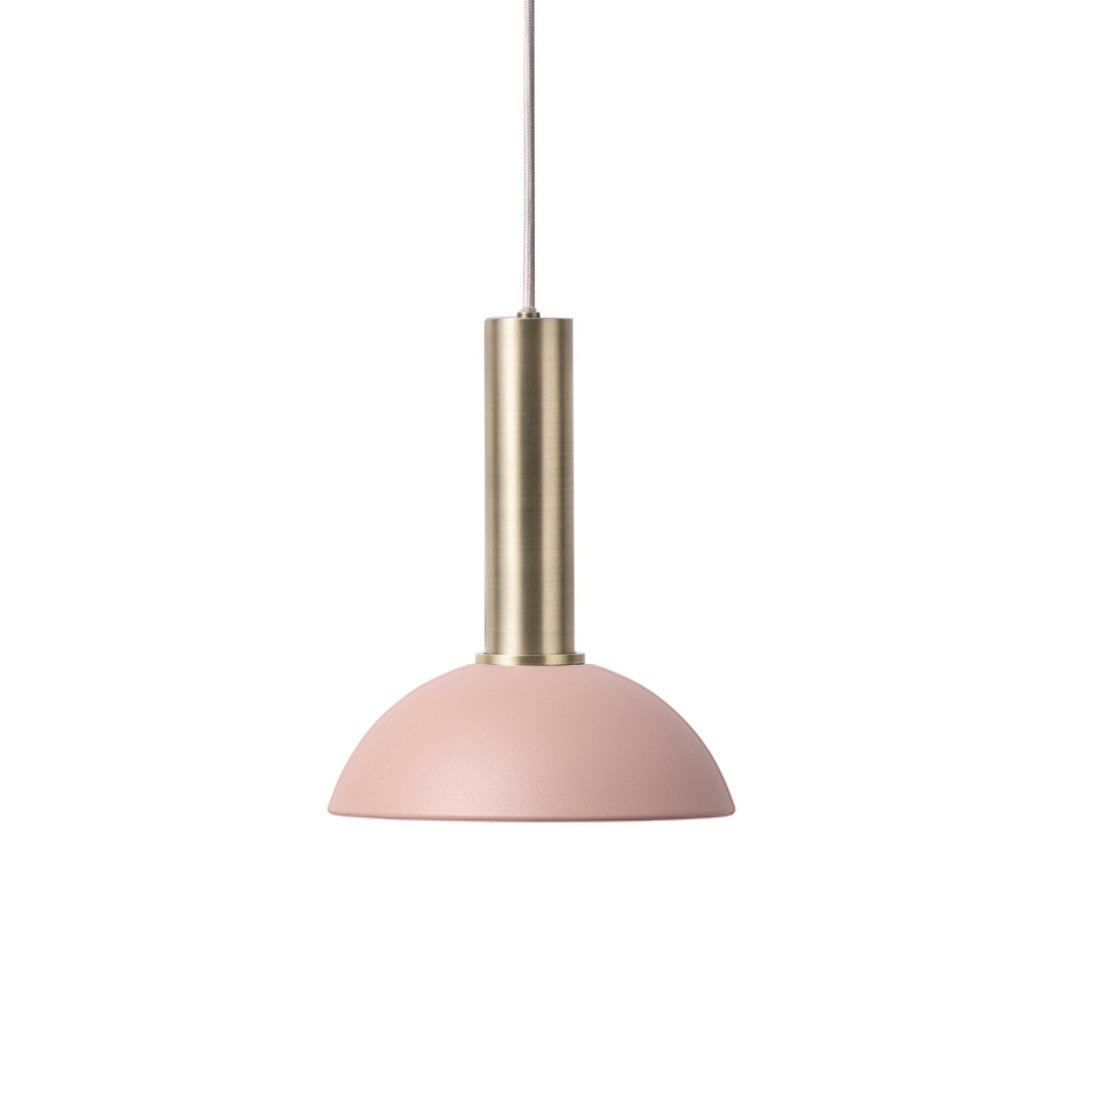 Ferm Living Collect Hoop High Hanglamp Messing Roze